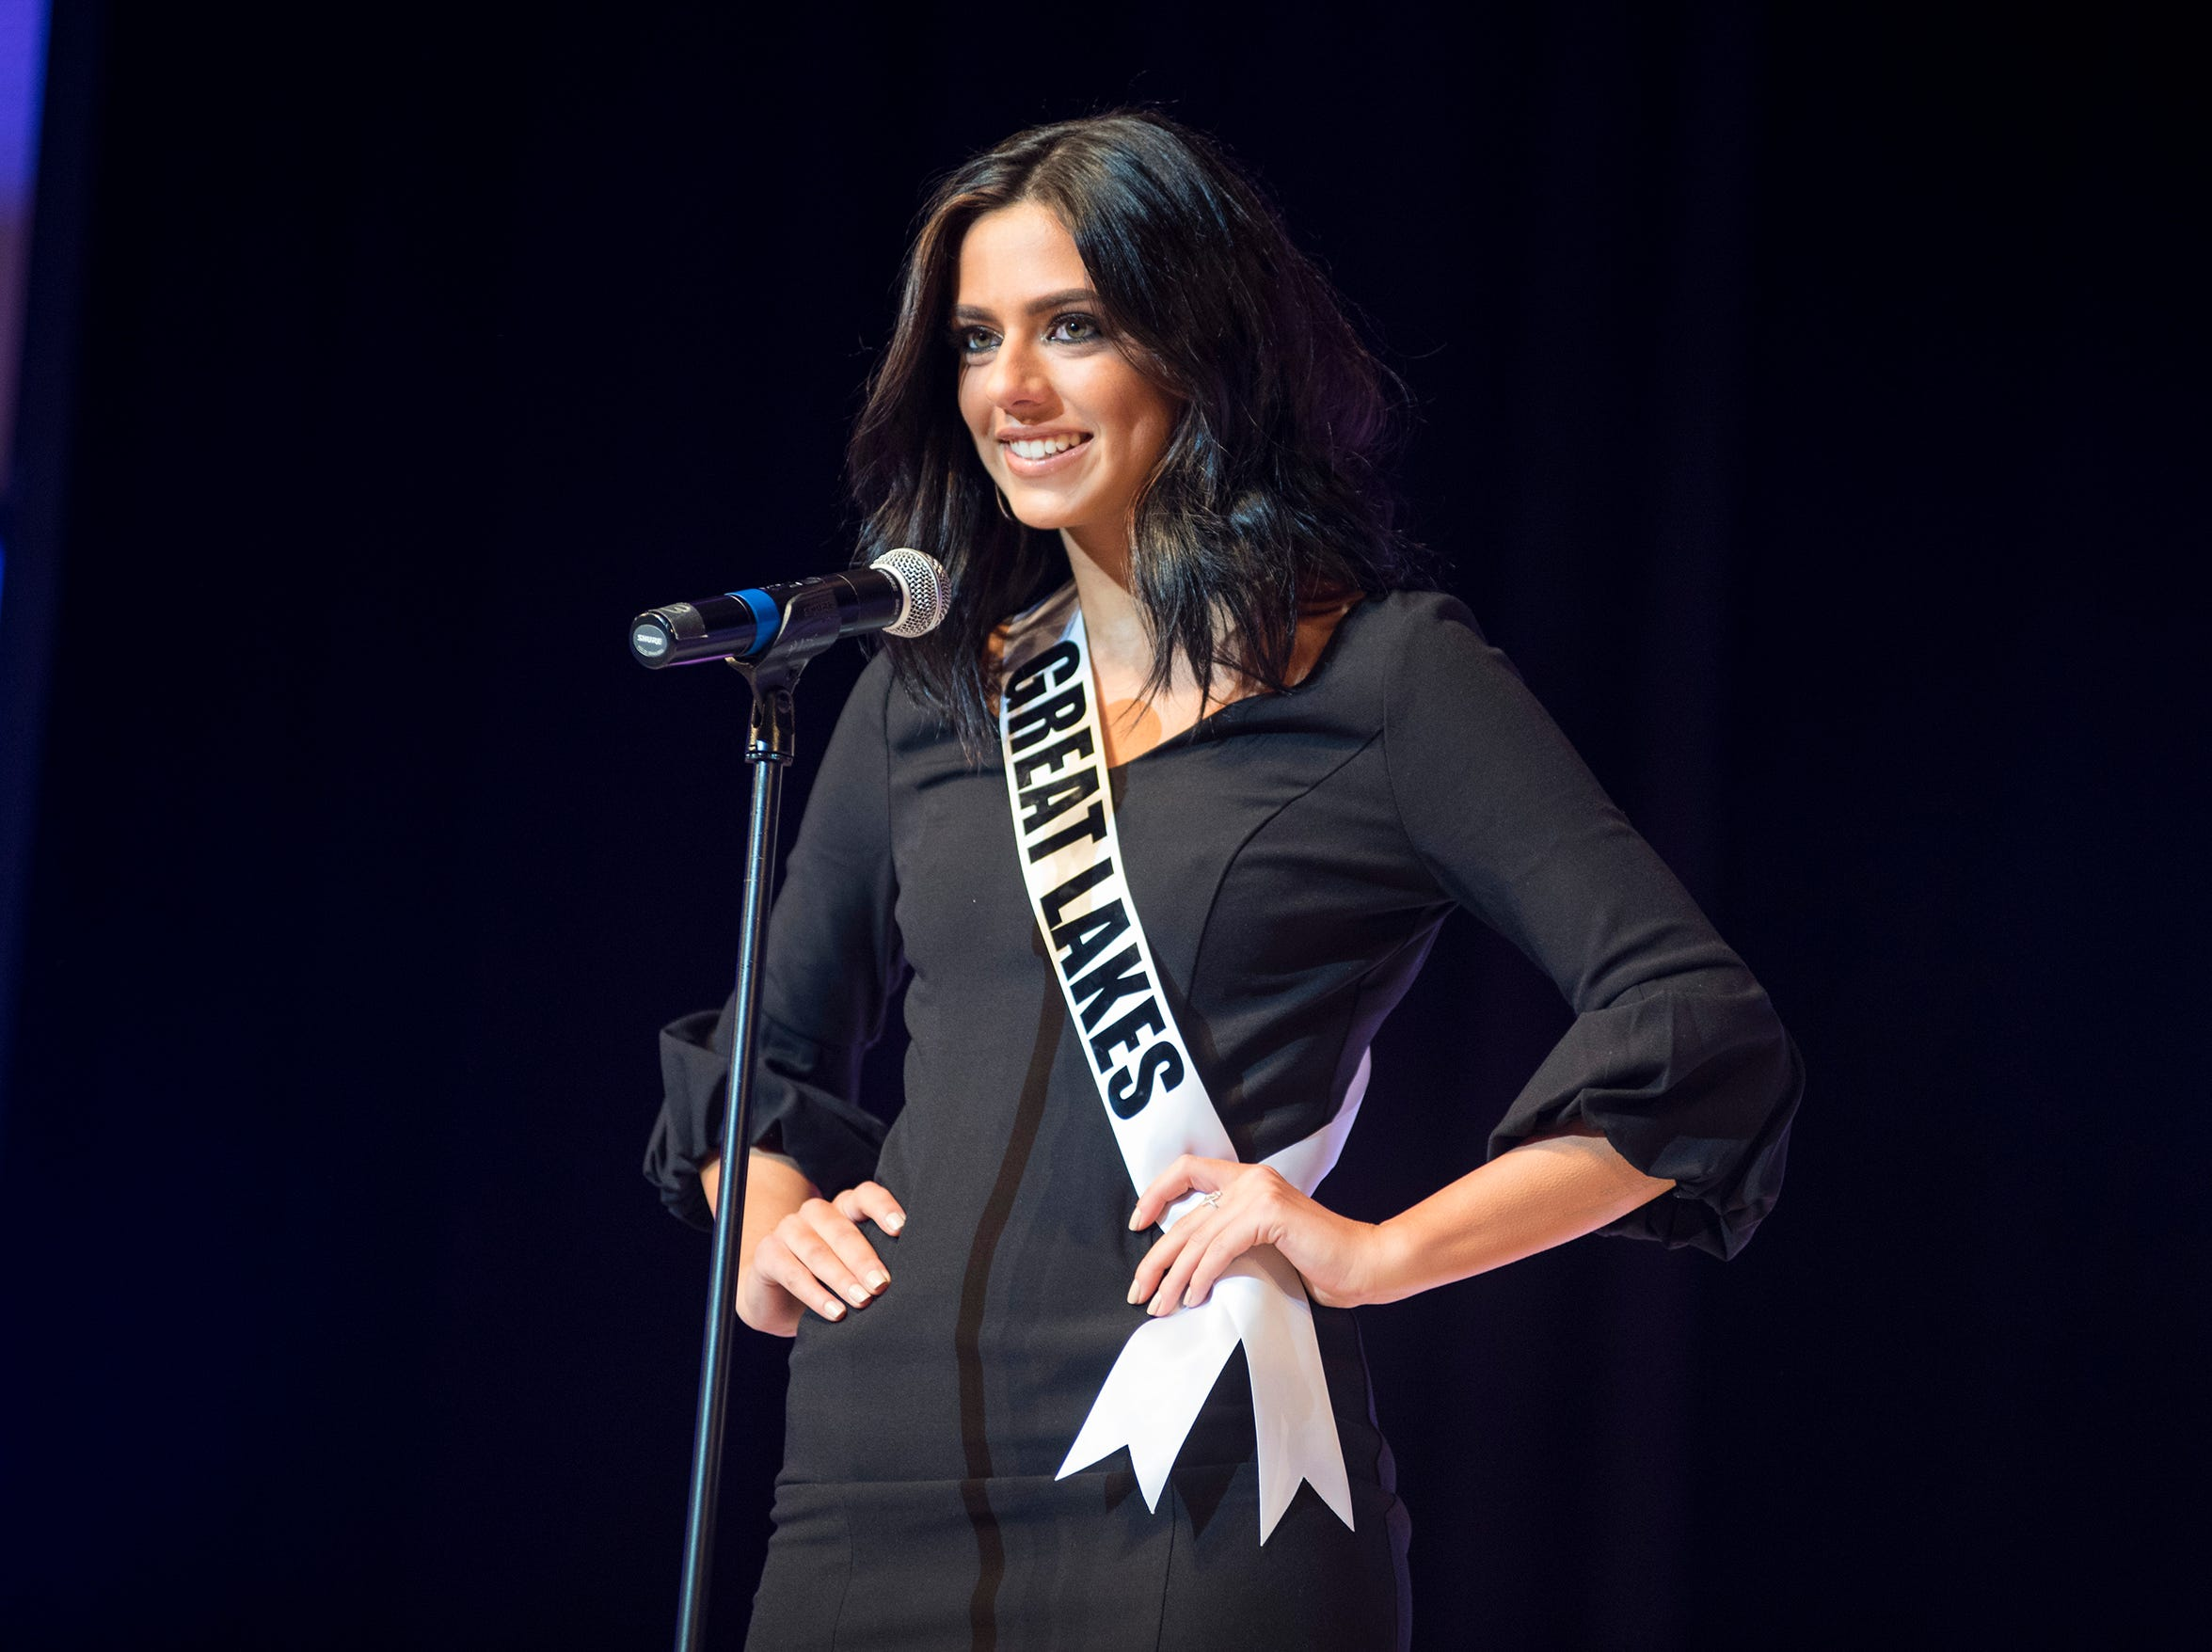 Miss Great Lakes Alexis Weston introduces herself Saturday, Sept. 22, 2018 at the start of the Miss Michigan USA competition at McMorran Theater.